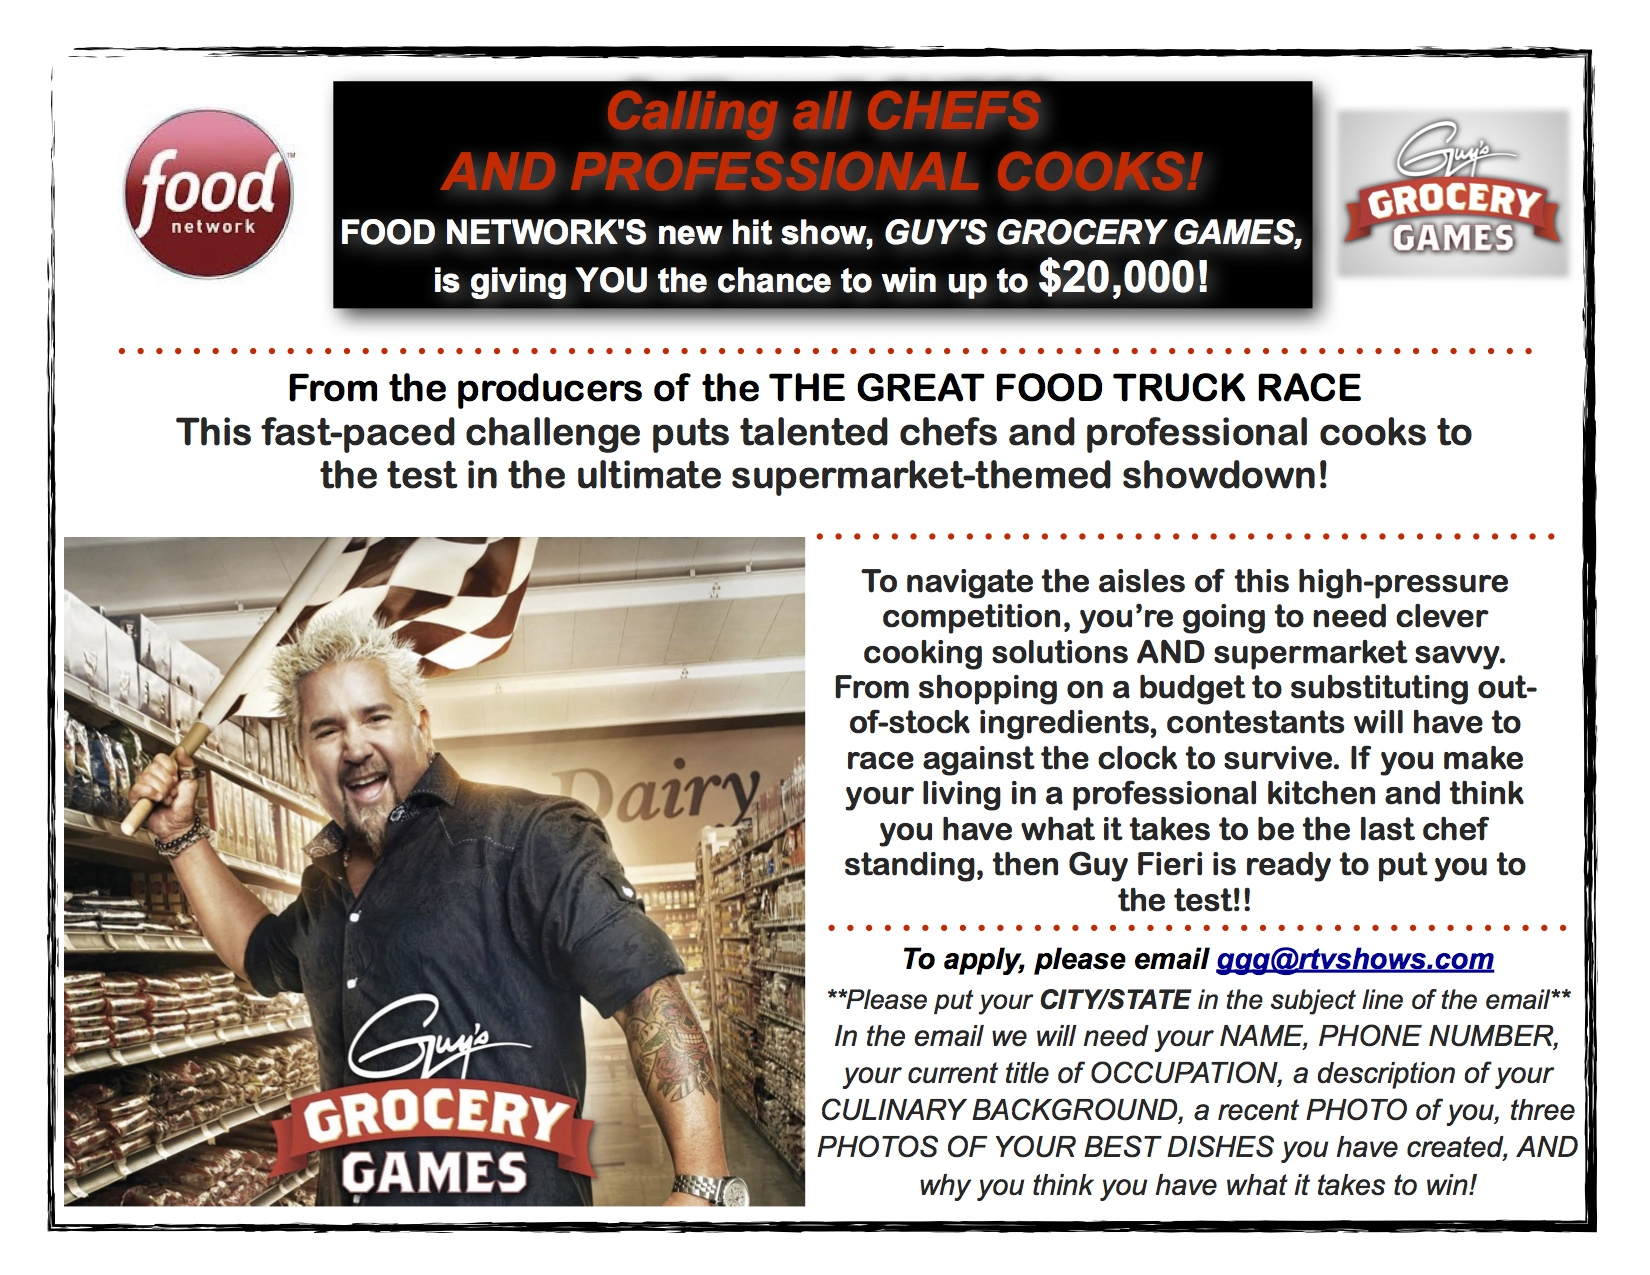 Nm chefs wanted for guys grocery games nmra training pictures of your best plated food a picture of yourself and note whether youve been on tv before be sure to share this with your friends solutioingenieria Choice Image